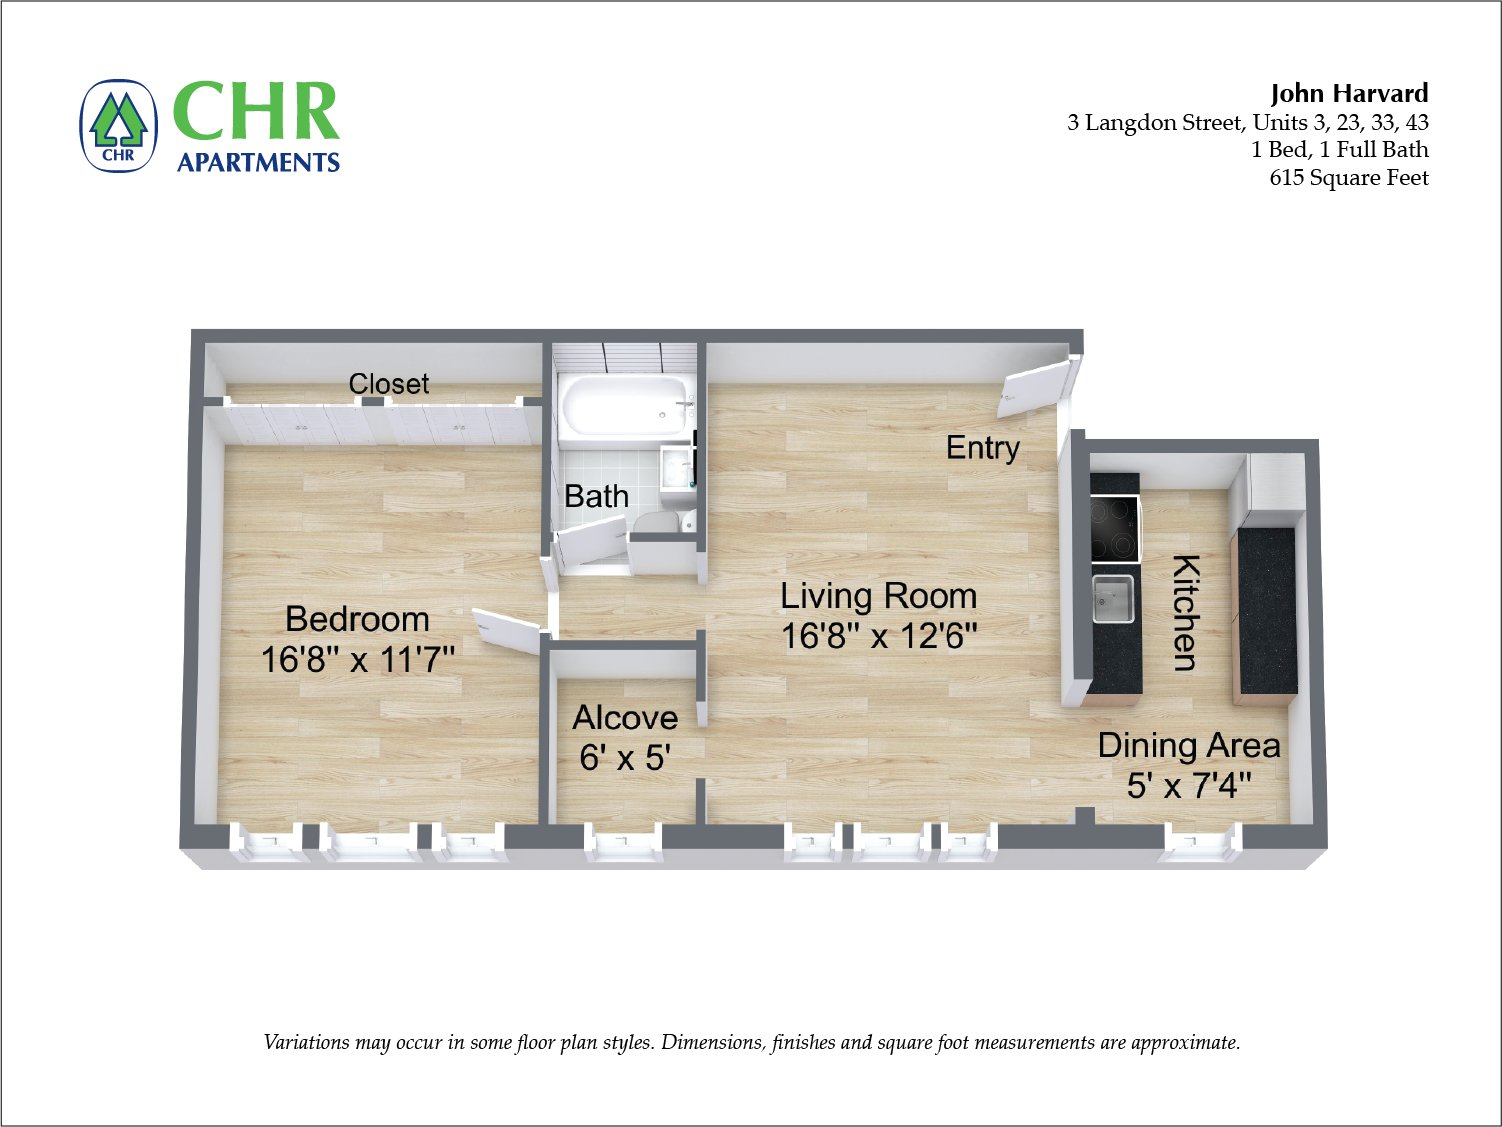 Floor plan 1 Bedroom image 6